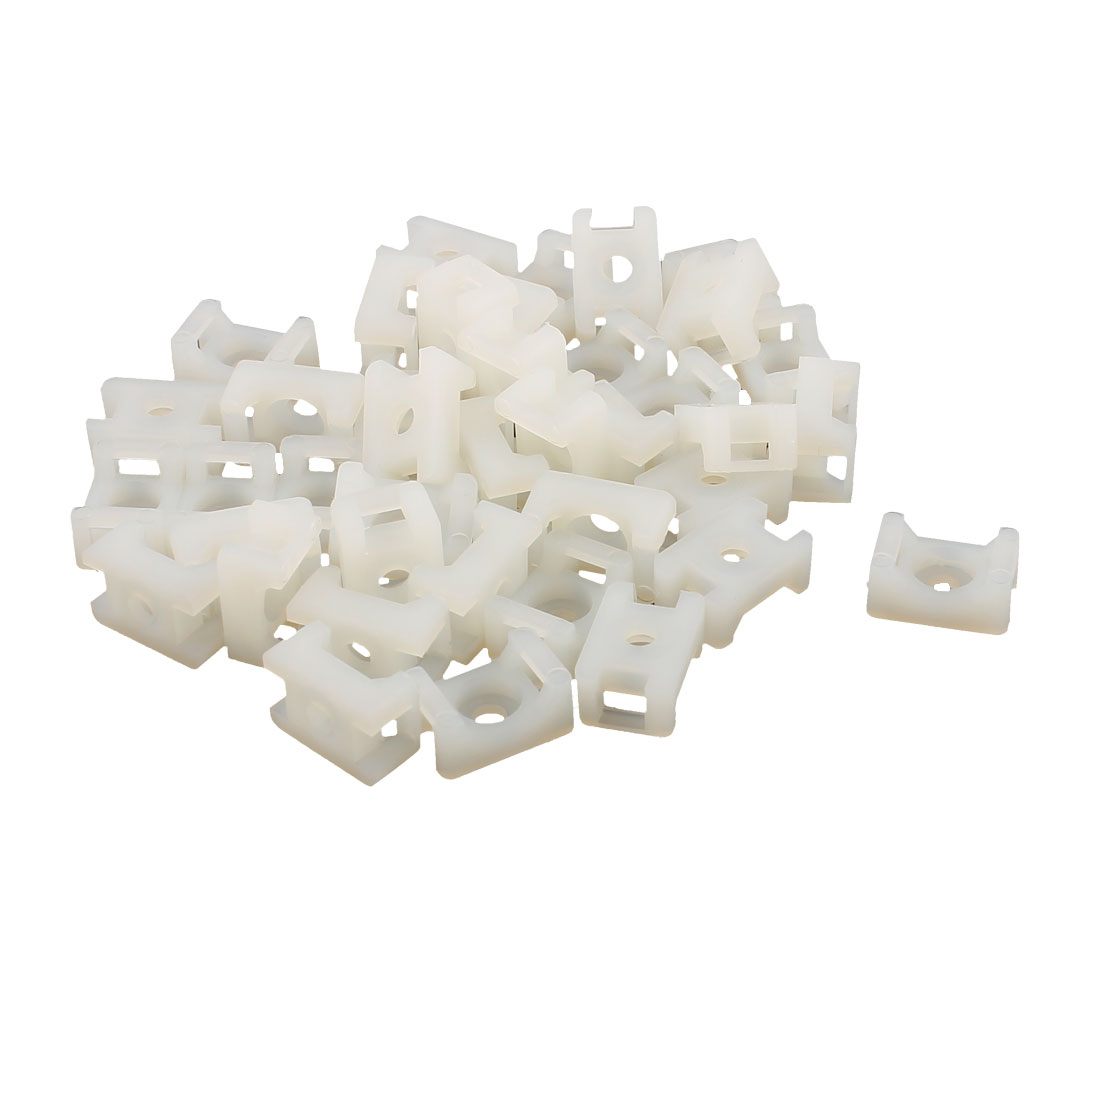 15 x 9mm Cable Tie Mount Wire Saddle Type Plastic Holder 40 Pcs White